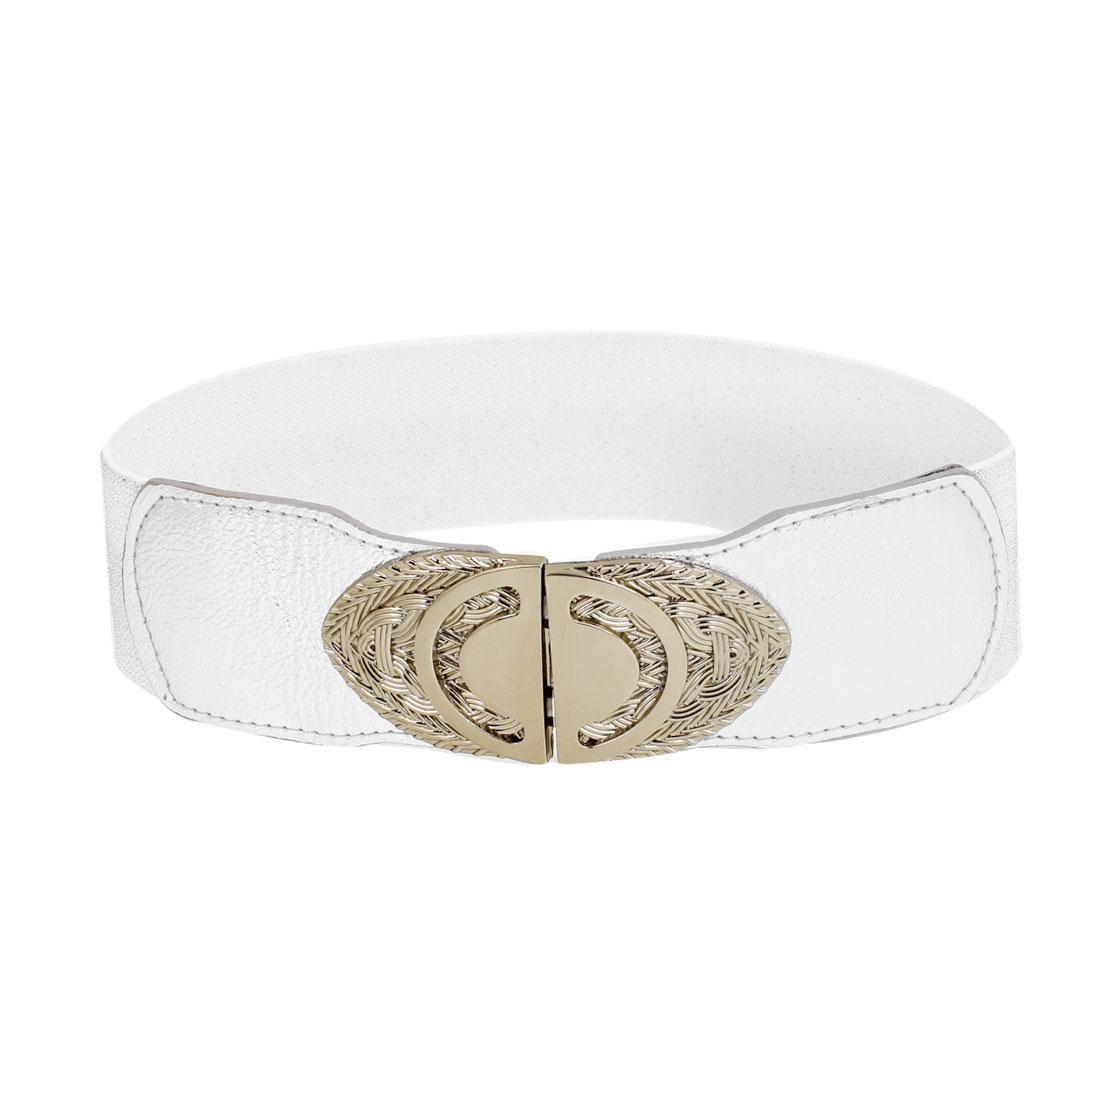 Silver Tone Faux Leather Wrapped Oval Interlock Buckle Stretchy Cinch Belt for Ladies